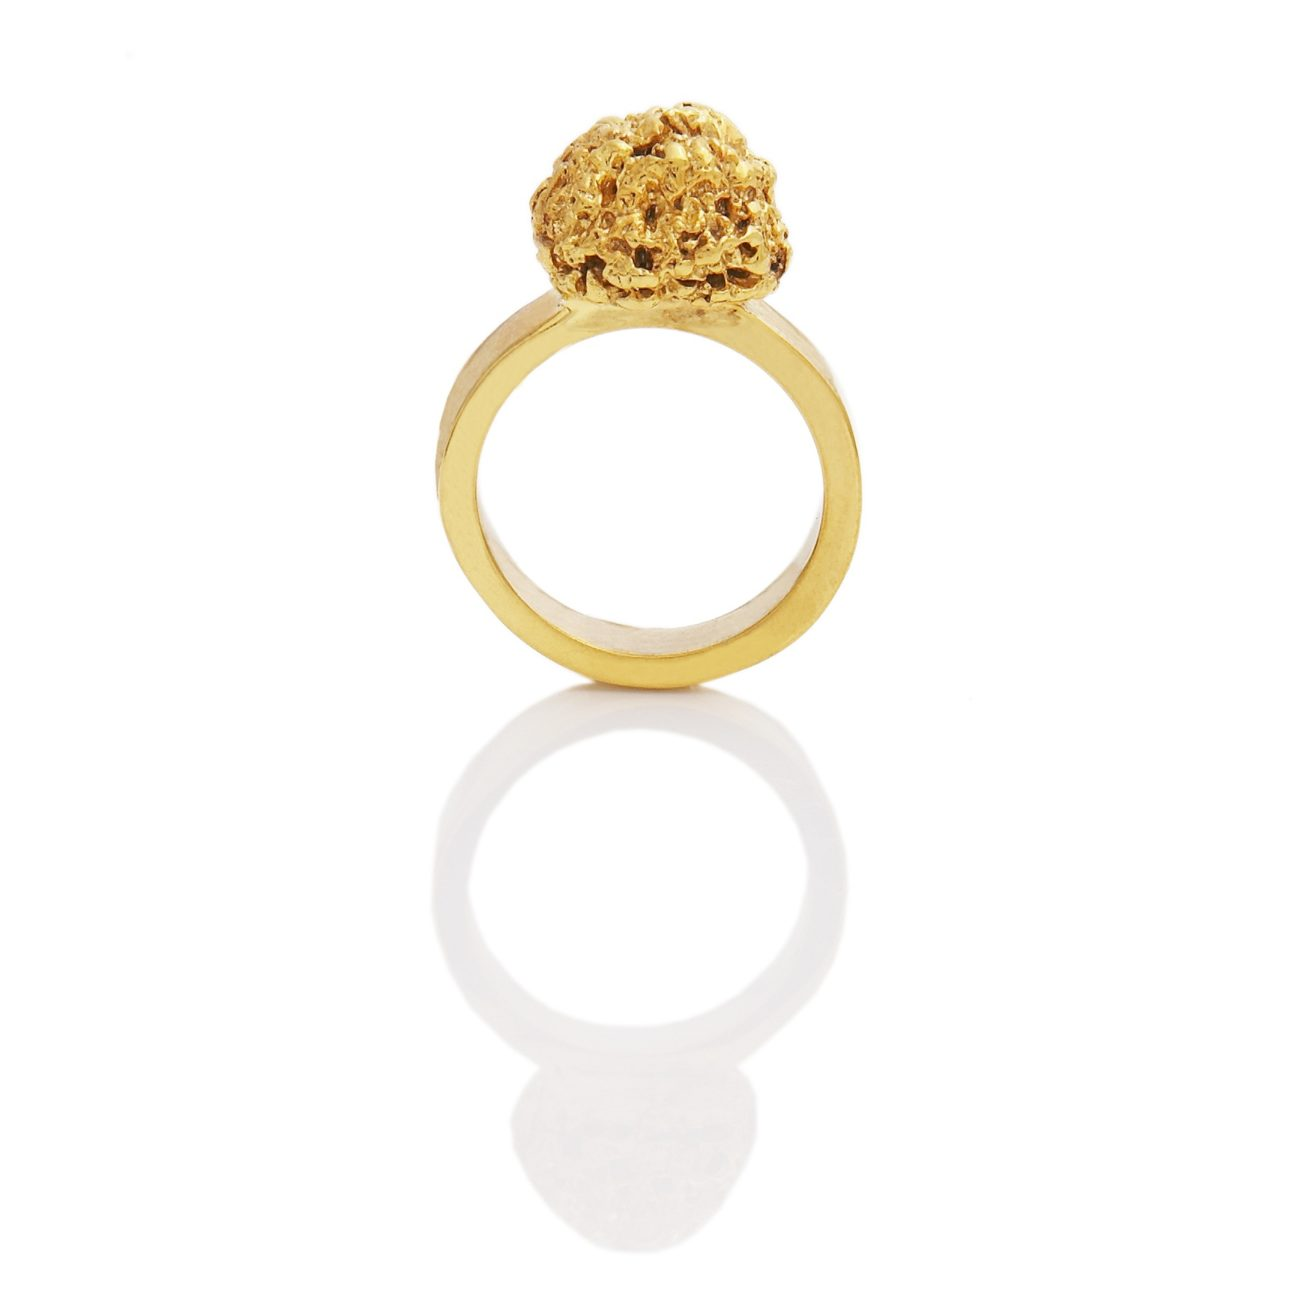 Golden Truffle Ring, Solid 18K Yellow Gold, Truffle is 10mm high, 10mm in diameter, band is 5mm wide and 2mm thick. 2010